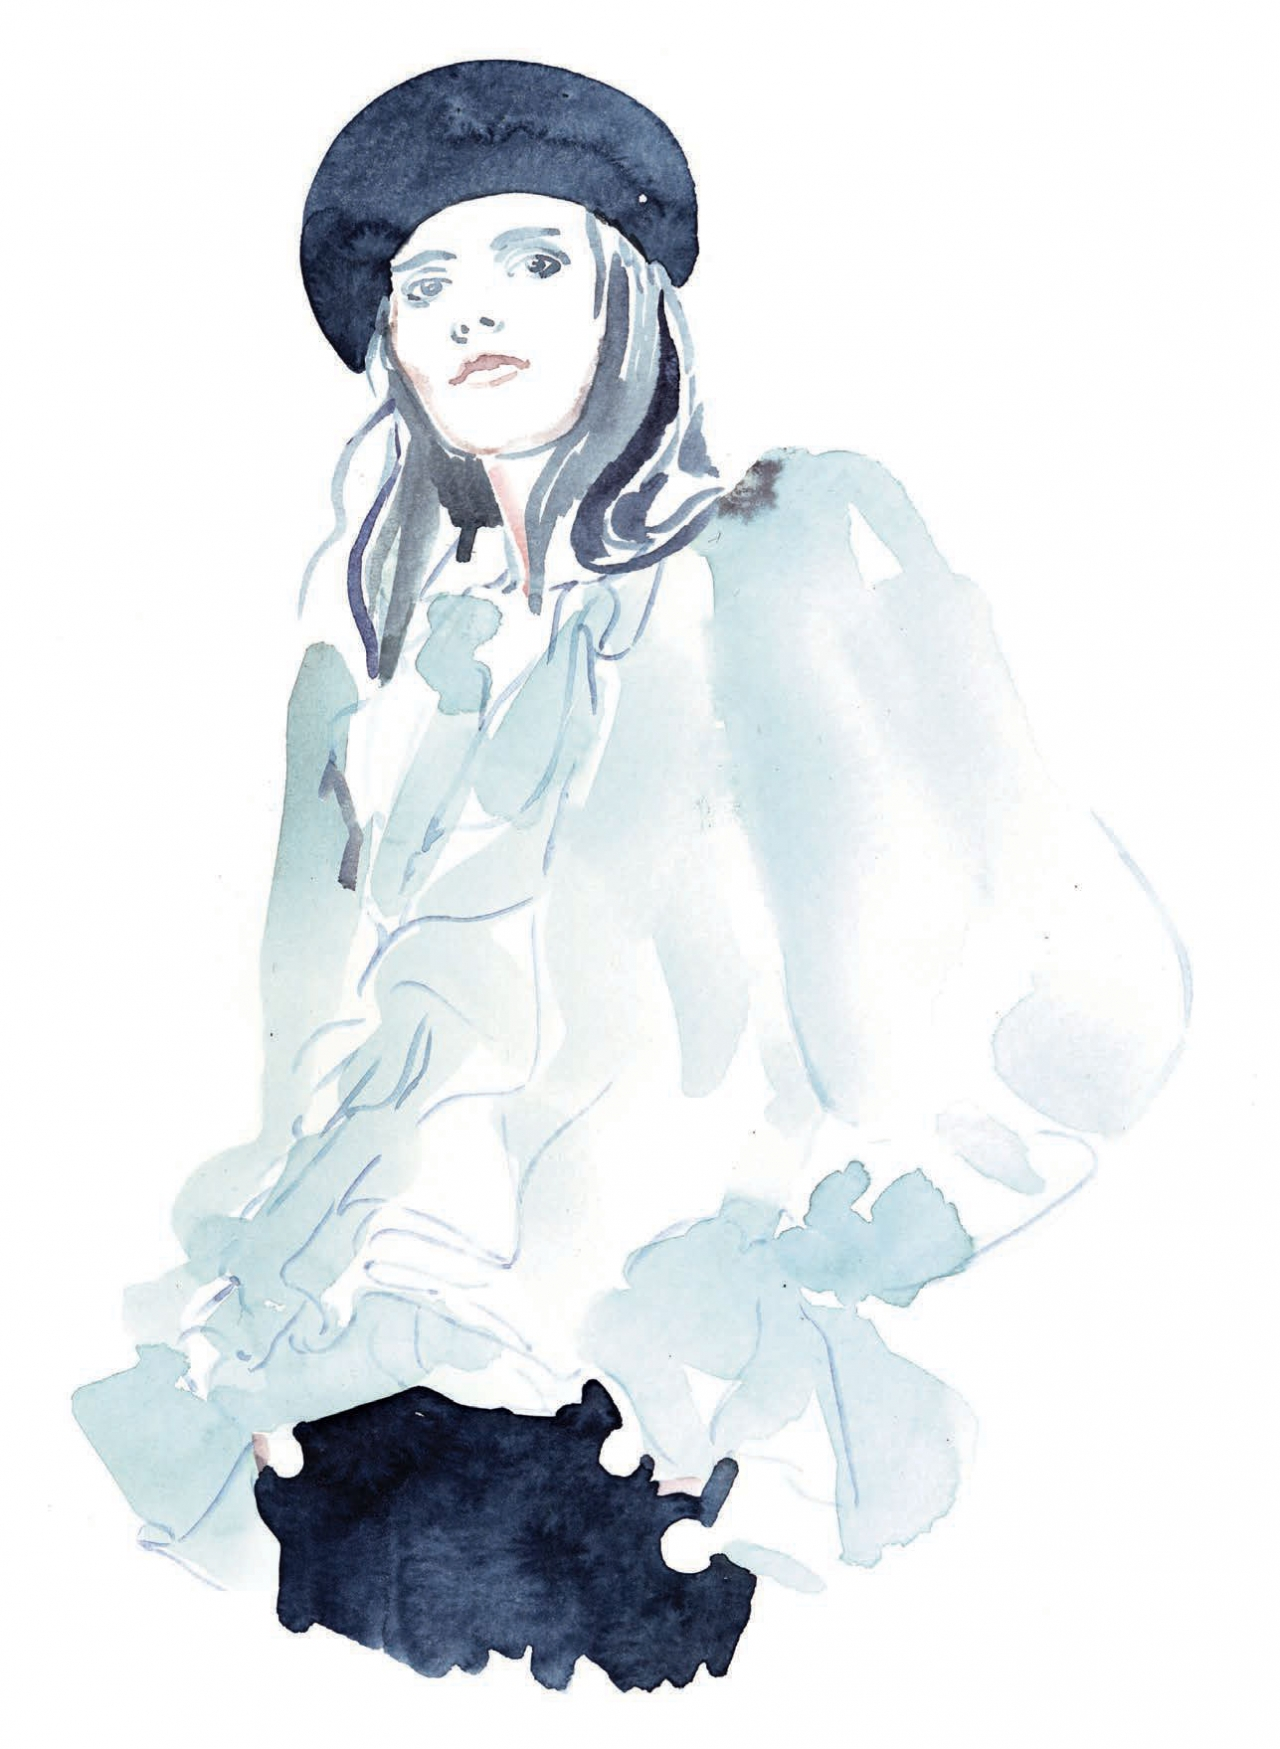 Haute Couture Illustrations for Die Presse